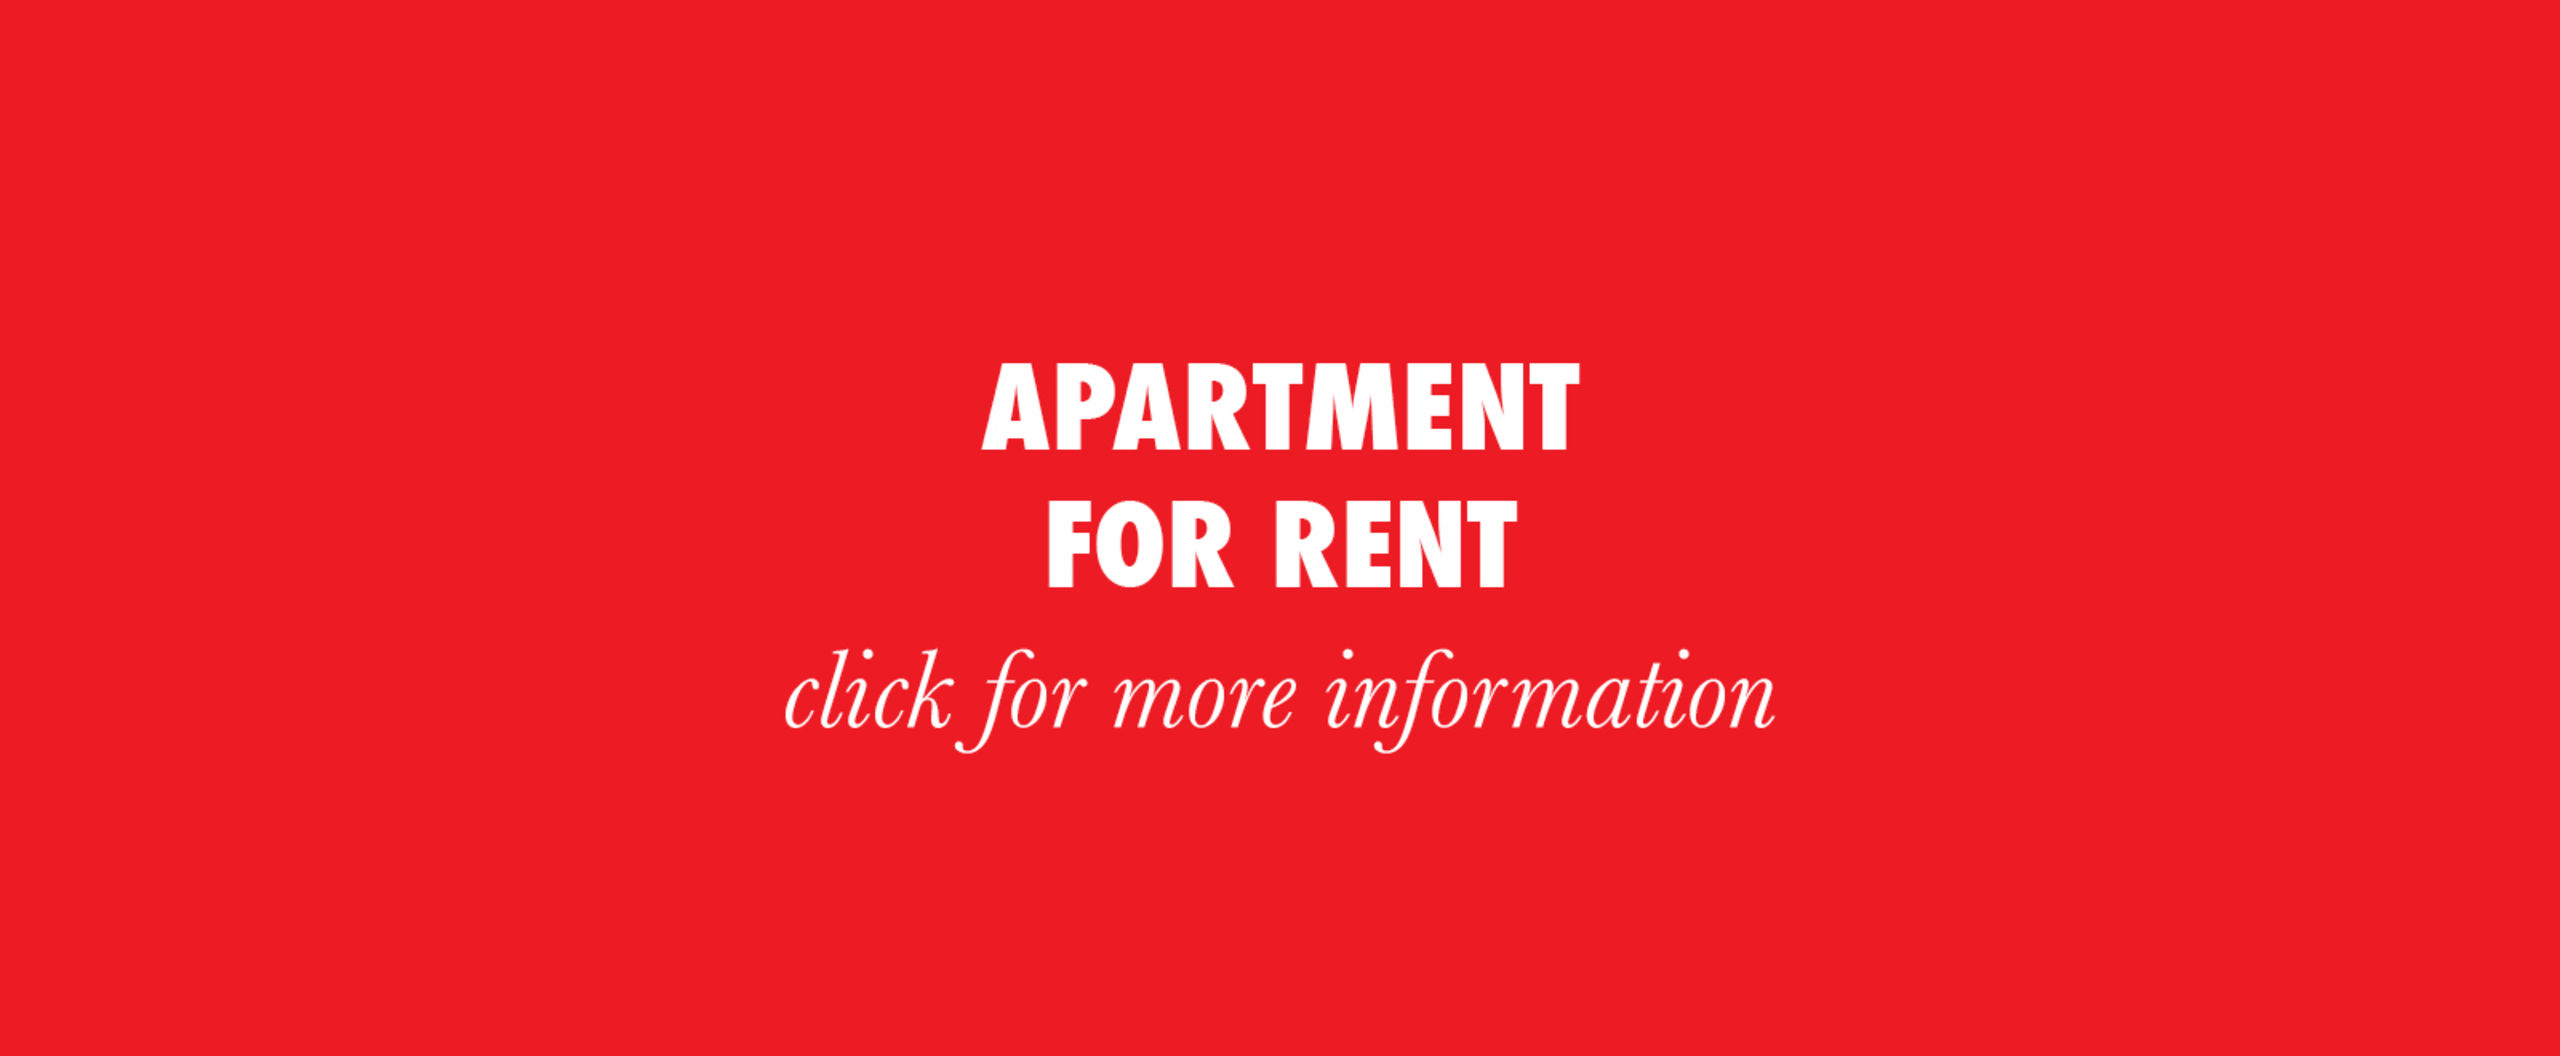 In The Market For a Spacious 1 Bedroom Apartment?